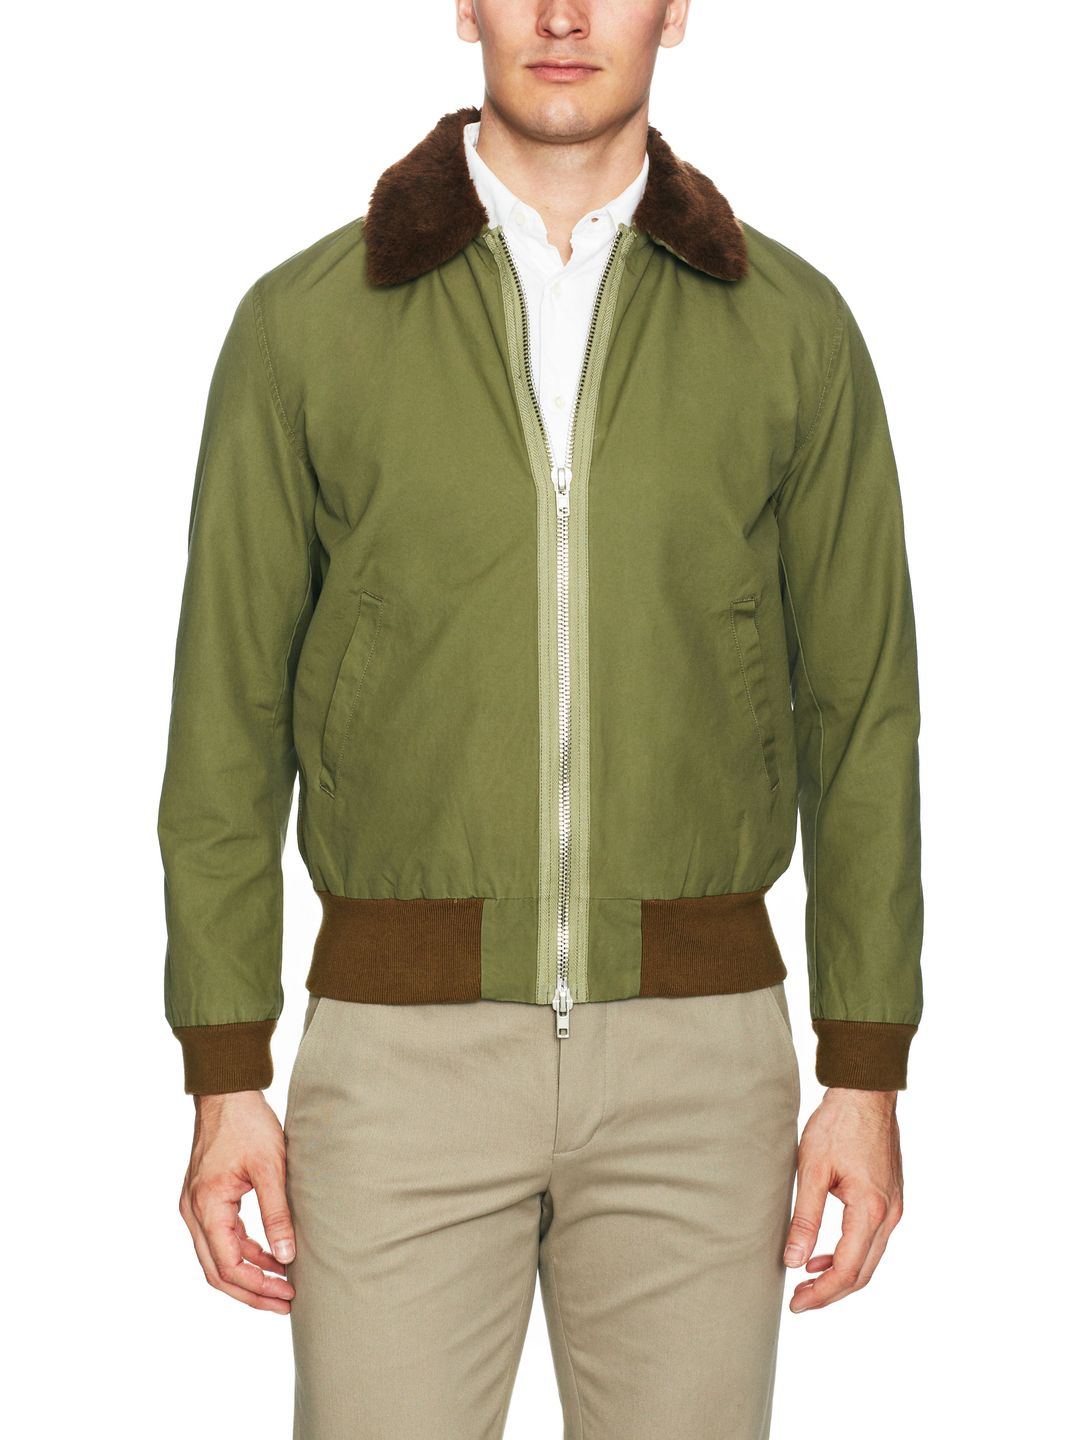 39027ad7bbe Rum Runner Jacket by GANT Rugger at Gilt USD 89 | Jackets and Bags ...